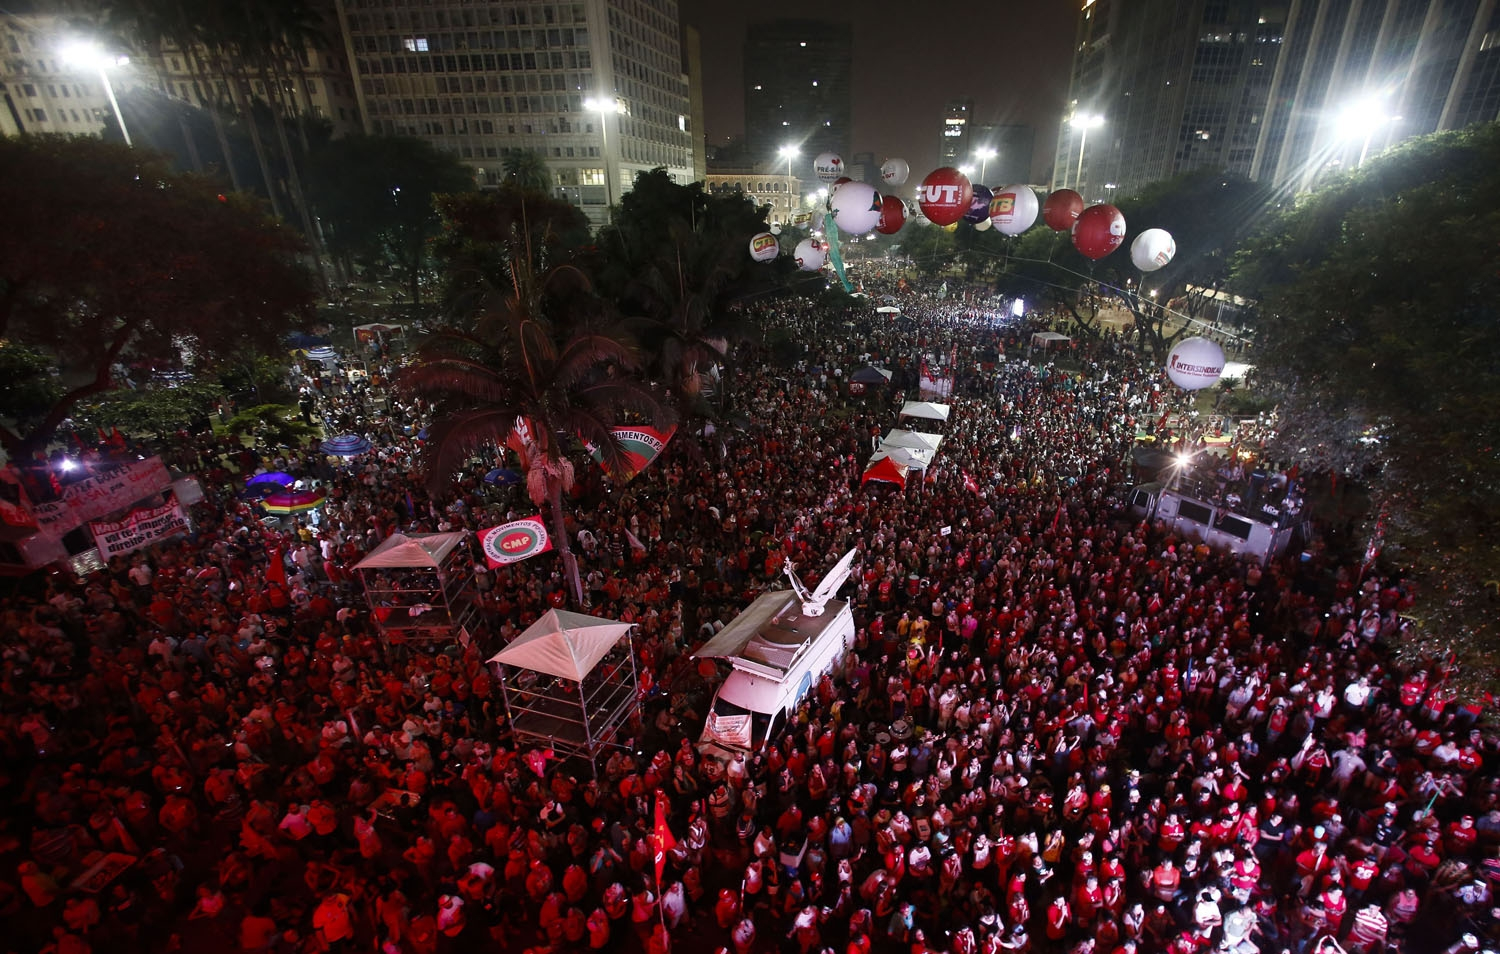 Supporters of Brazilian President Dilma Rousseff follow on big screens in Sao Paulo, the voting of lawmakers at the Congress in Brasilia on whether the impeachment of Rousseff will move forward, on April 17, 2016